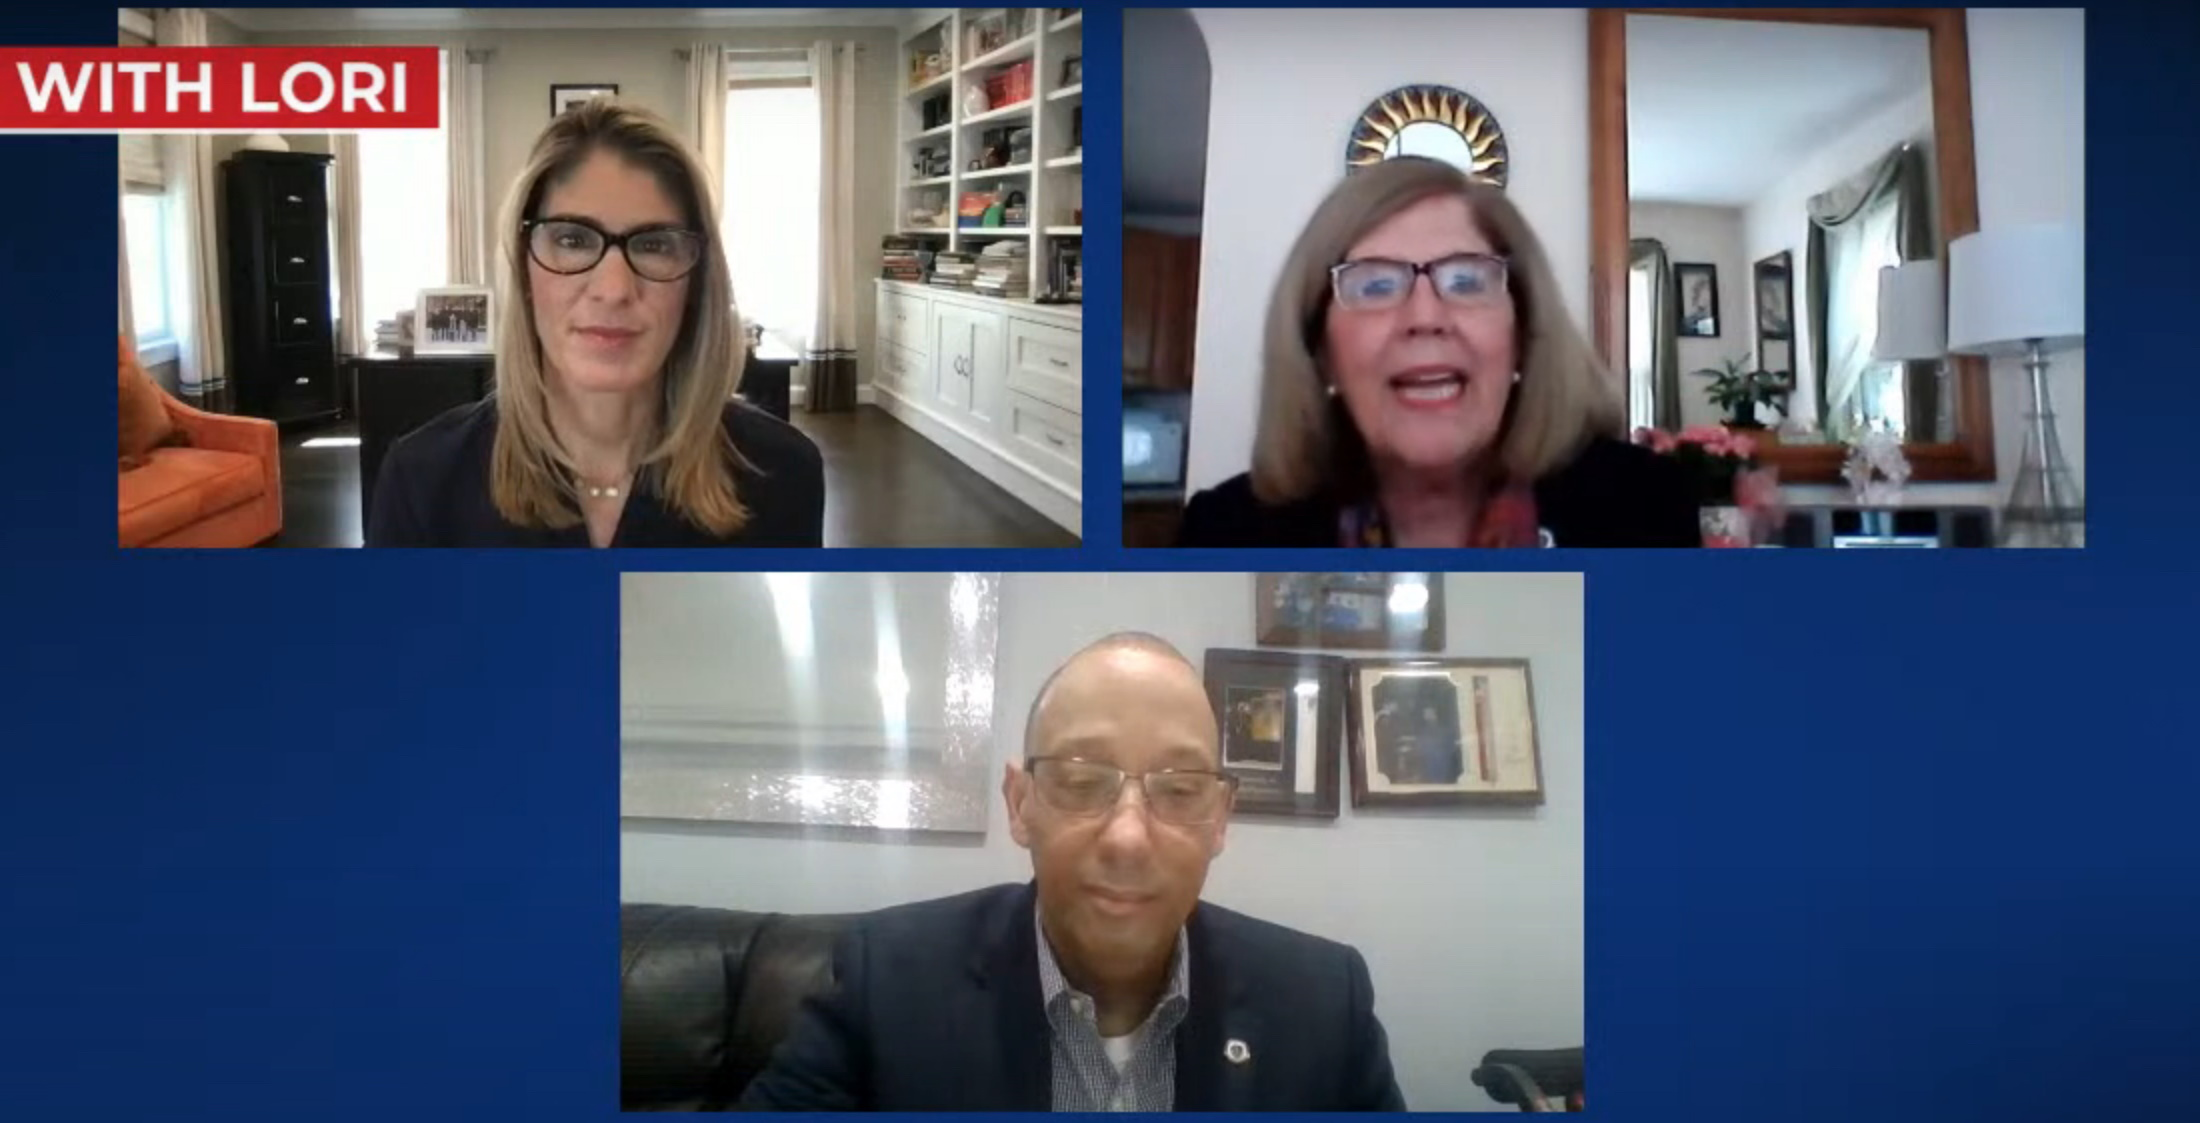 """House Speaker Pro Tempore Kate Hogan (top right), appearing in a livestream discussion with Congresswoman Lori Trahan (top left) and Rep. Frank Moran, said federal stimulus funding will function as """"the hand of recovery."""" [Screenshot]"""